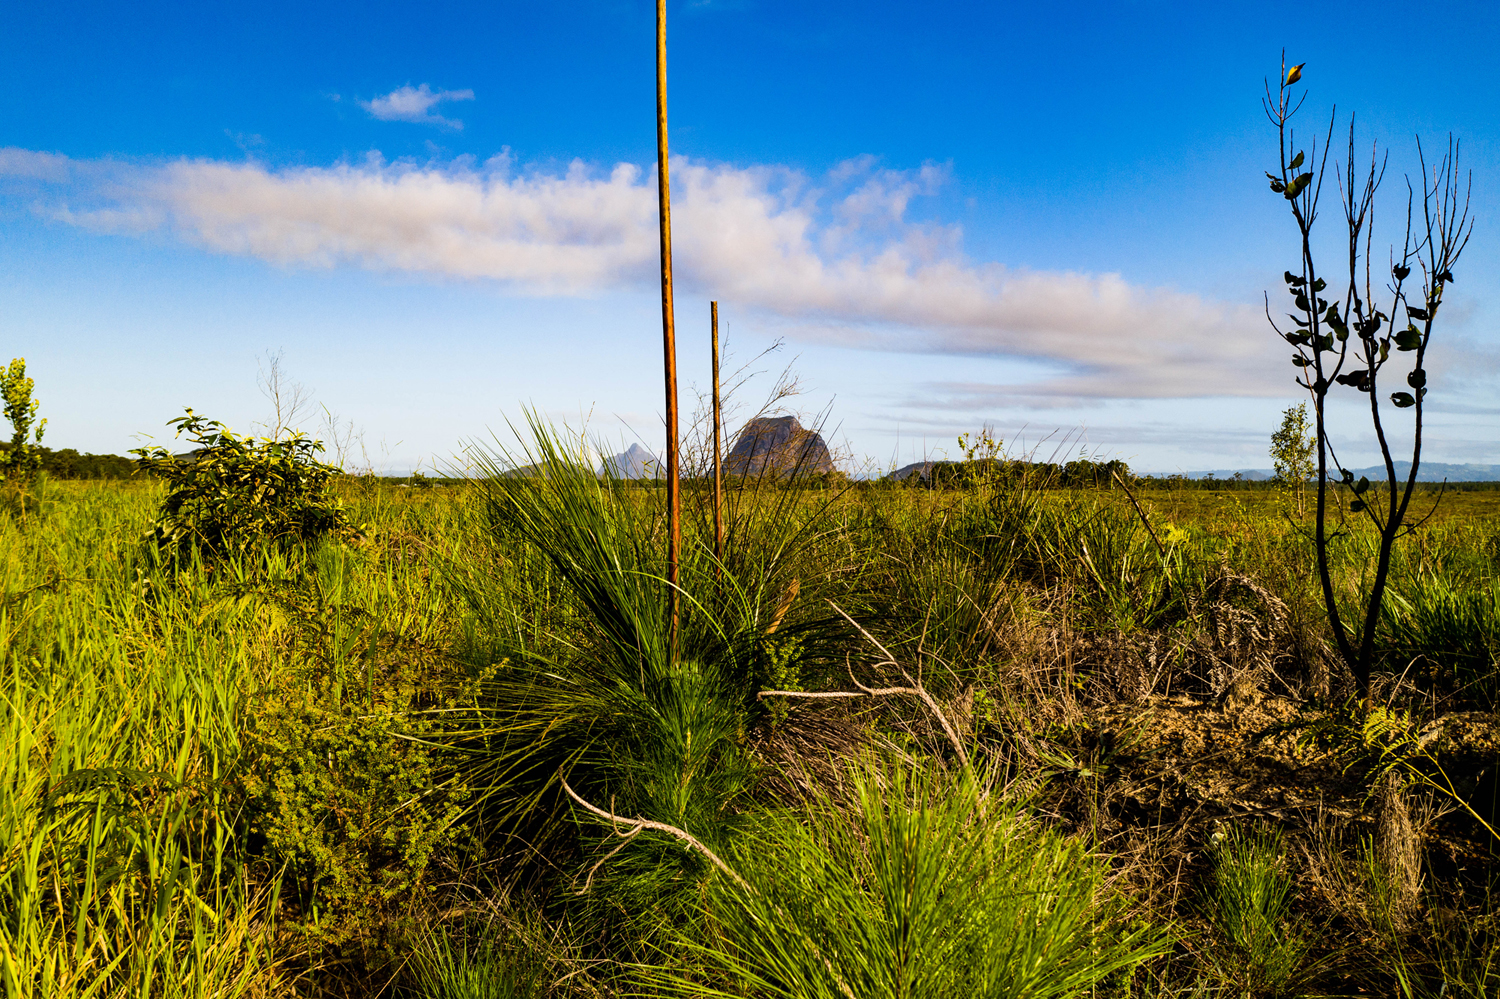 Glass House Mountains from low level